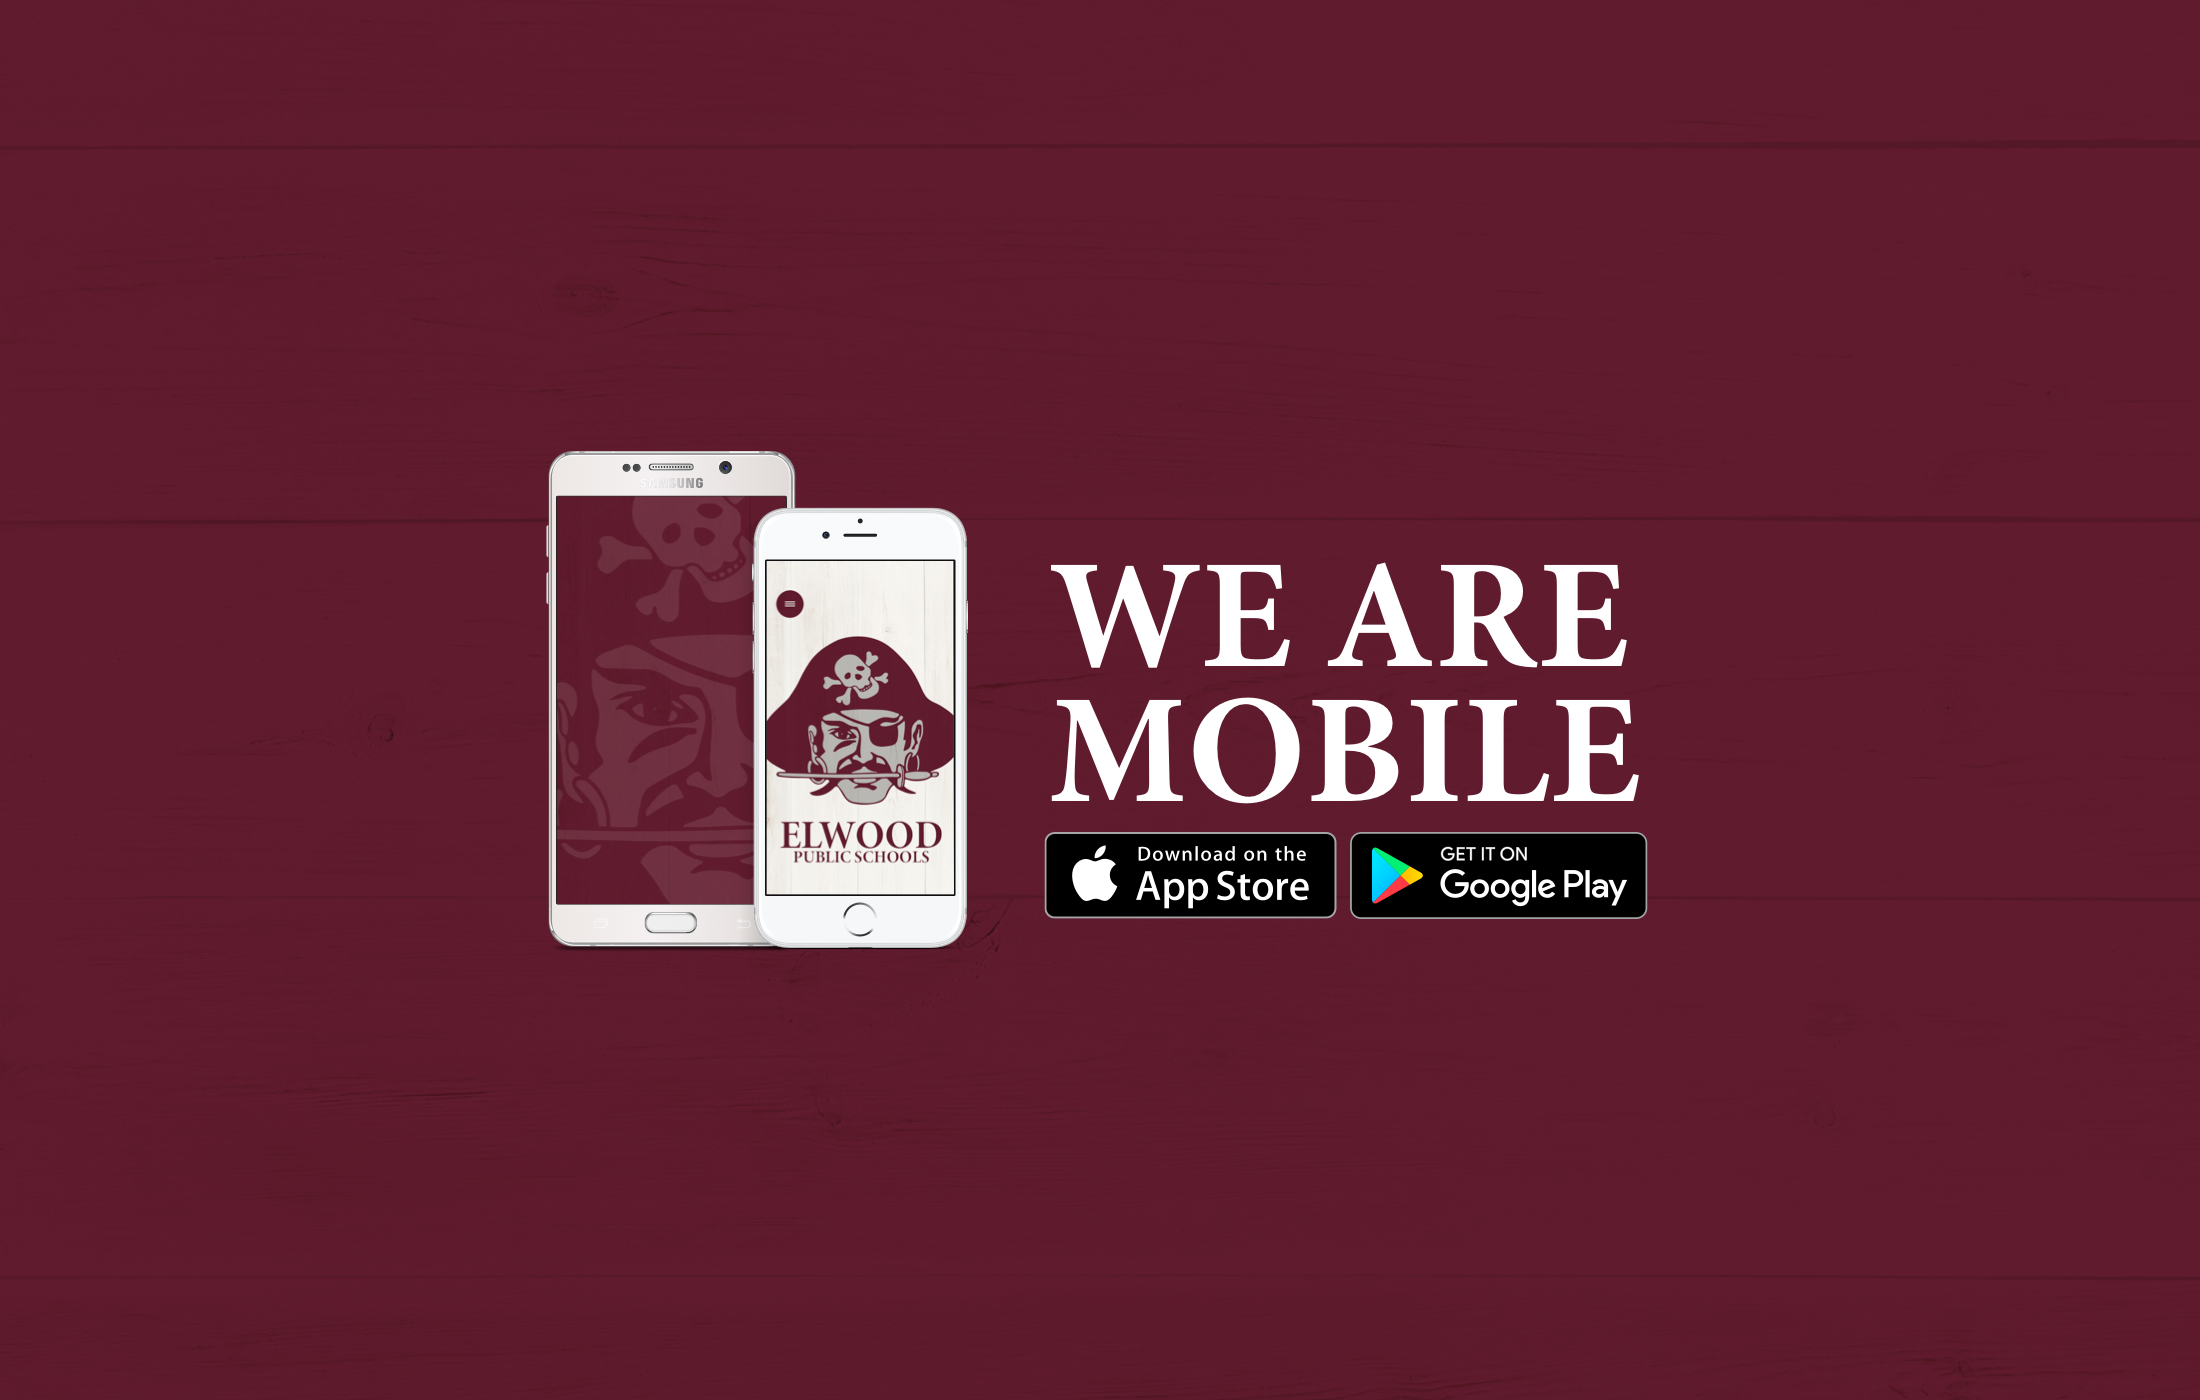 Download our mobile apps for the most recent and up-to-date information!